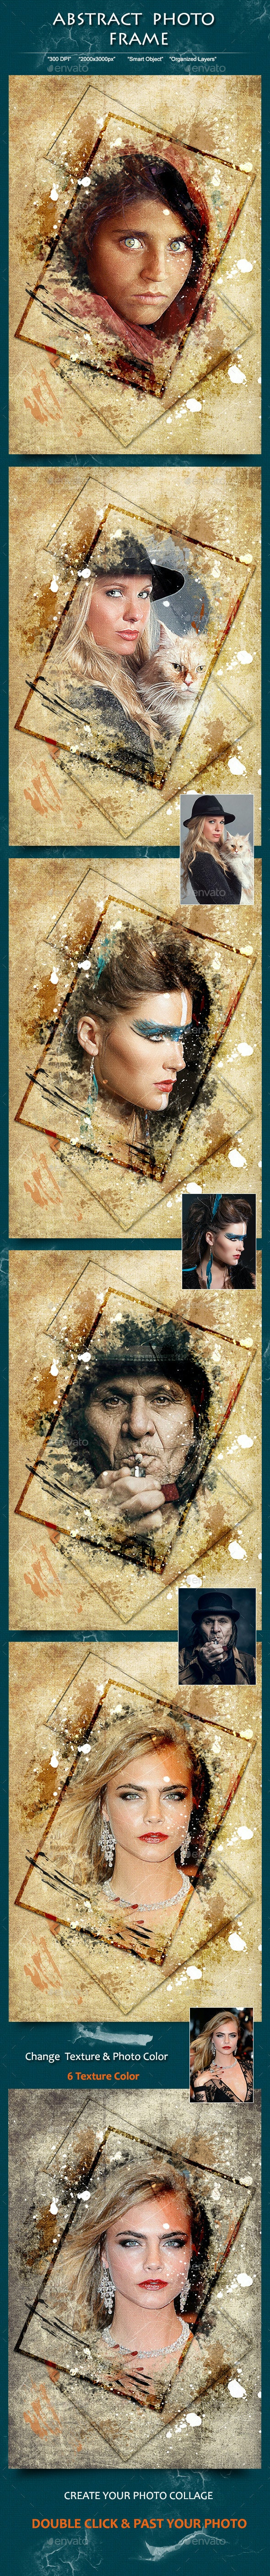 Abstract Photo Frame - Photo Templates Graphics